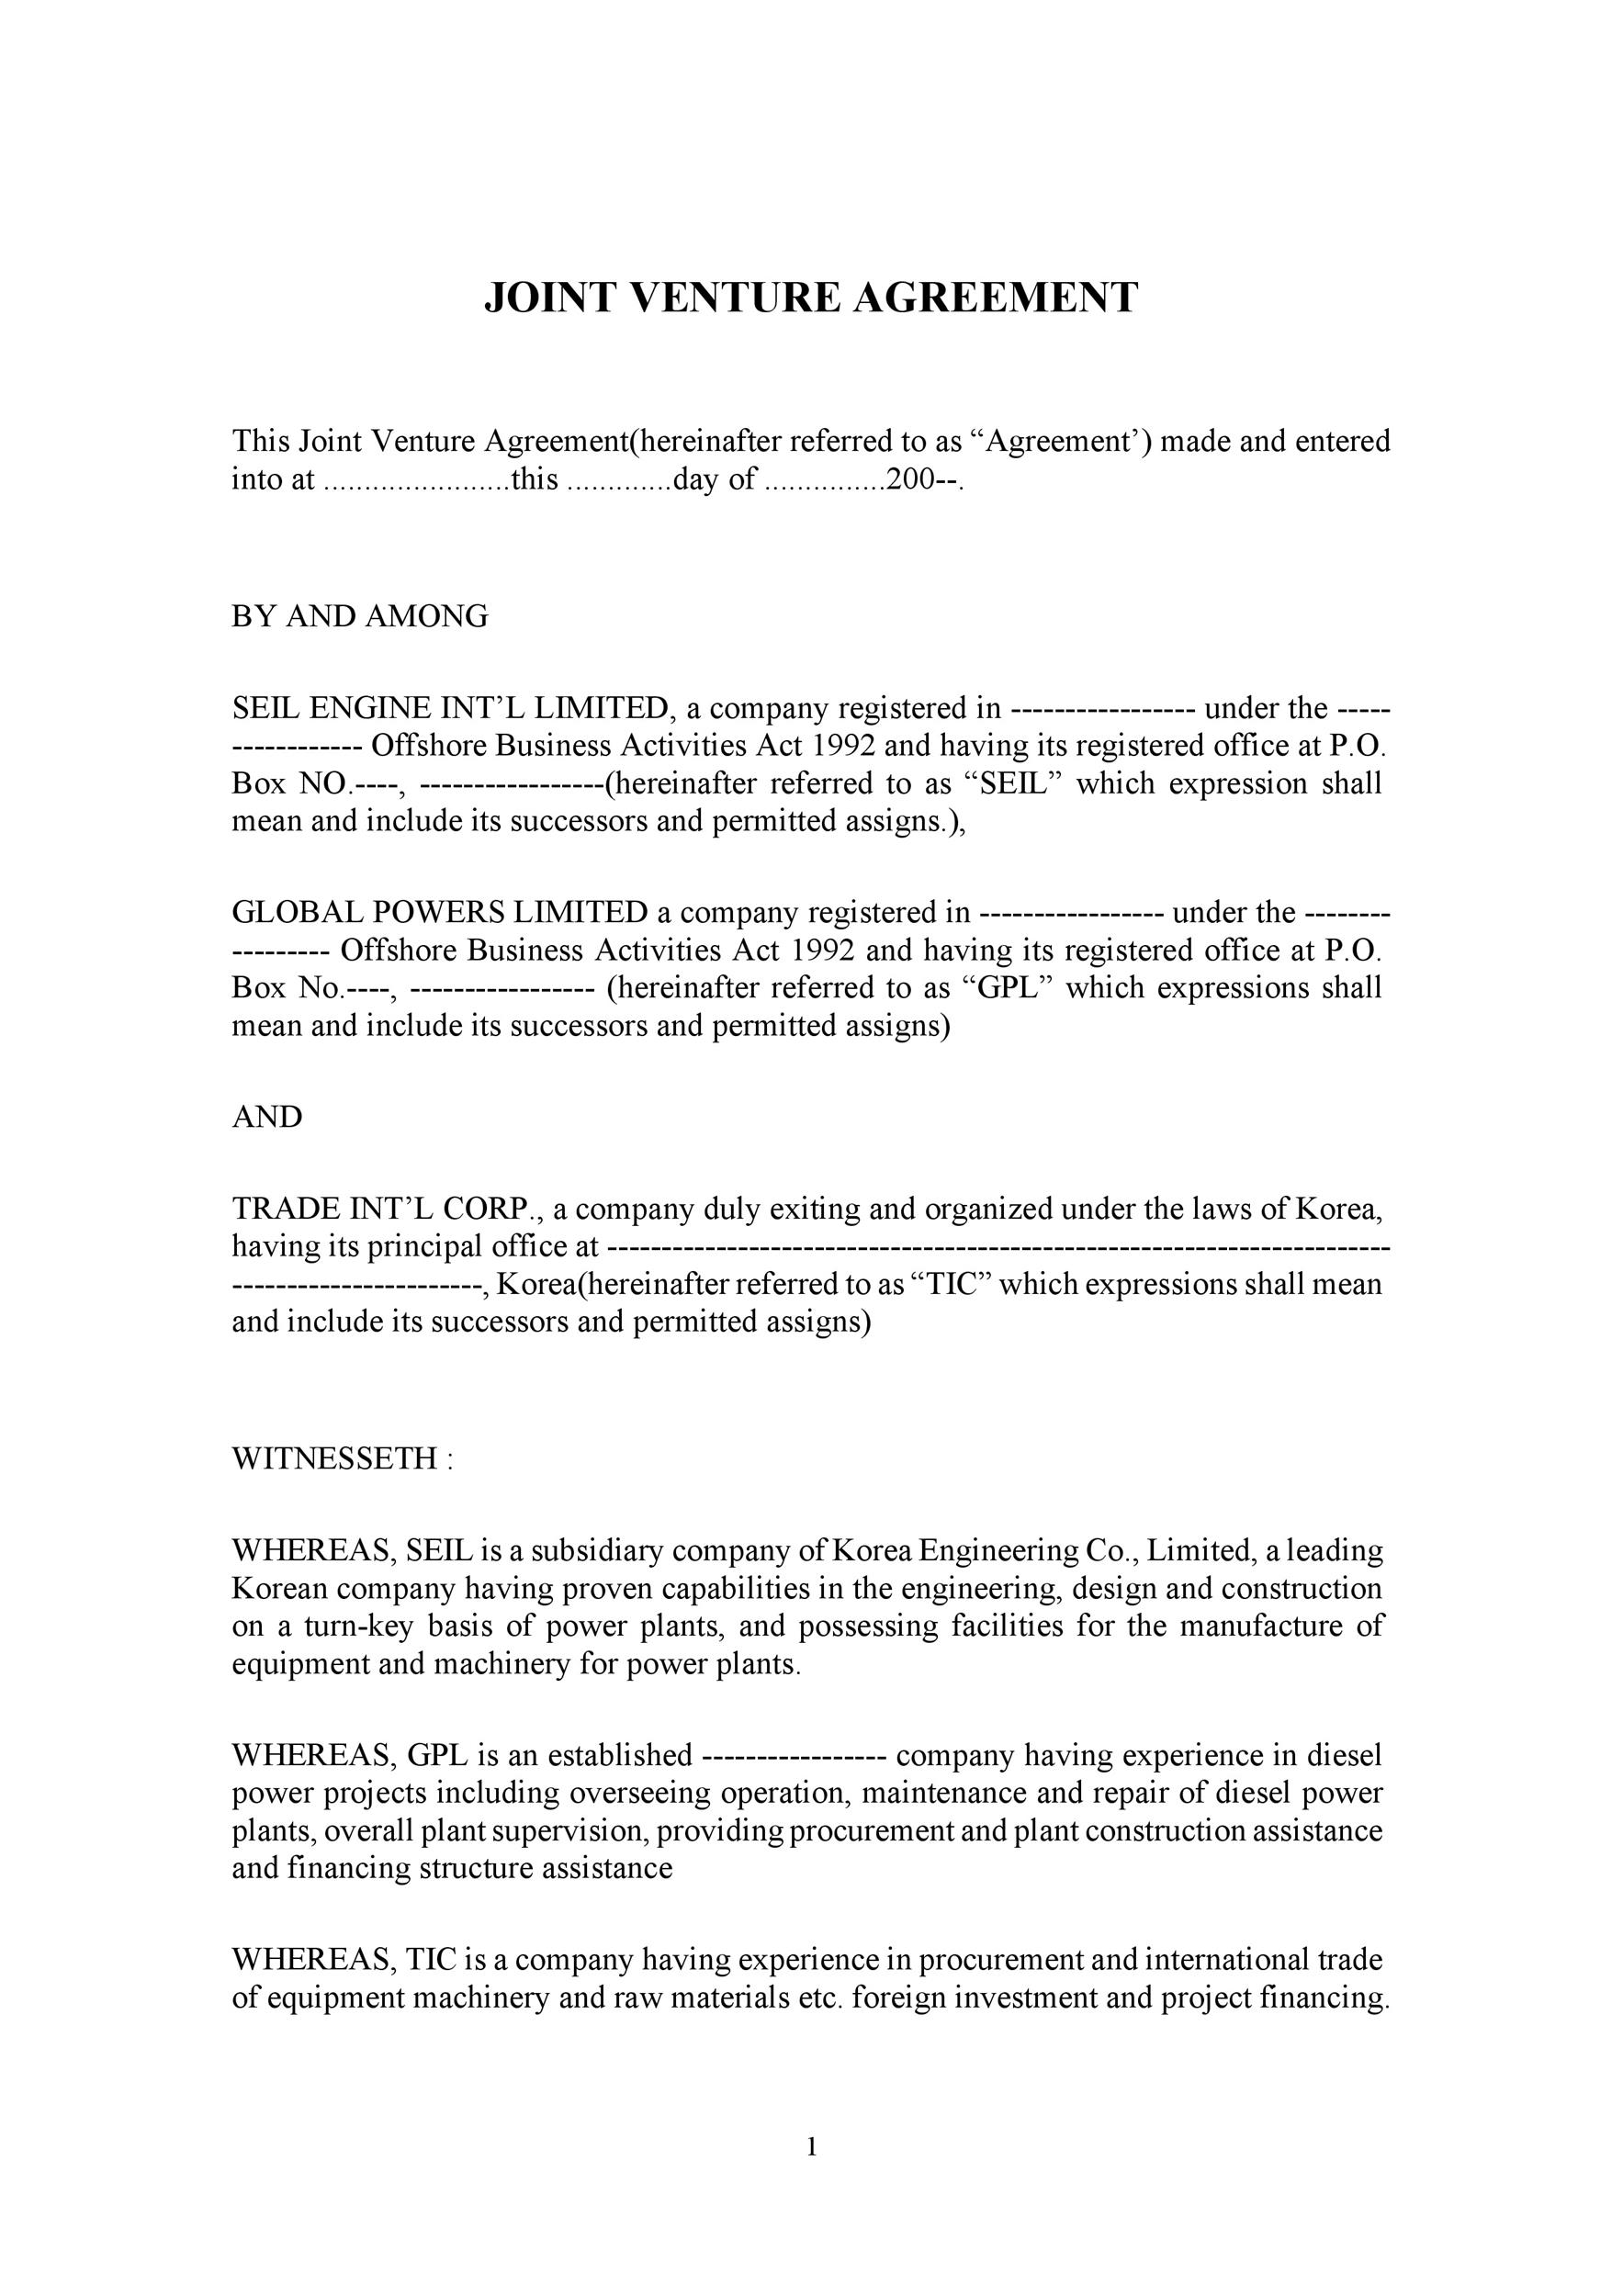 Lovely Printable Joint Venture Agreement Template 07  Joint Venture Agreements Sample